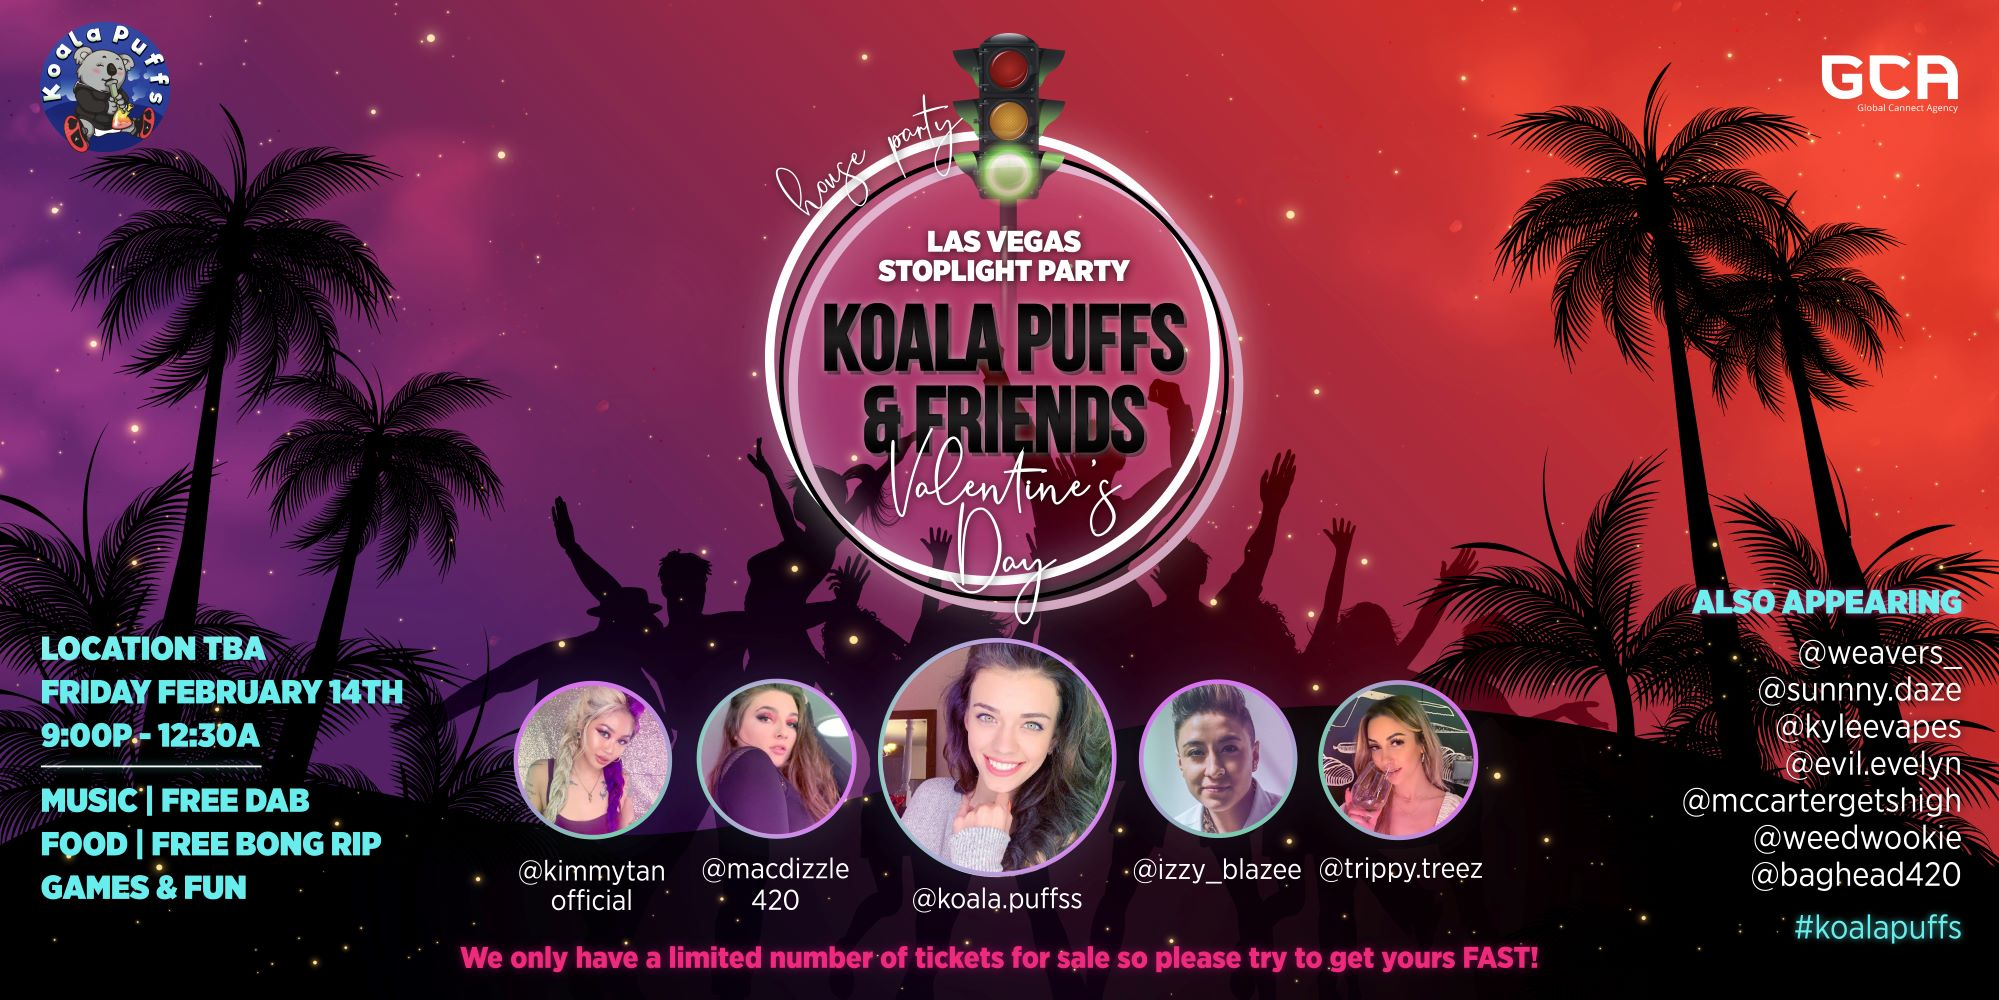 Koala Puffs Las Vegas Valentine's Day Stoplight Party